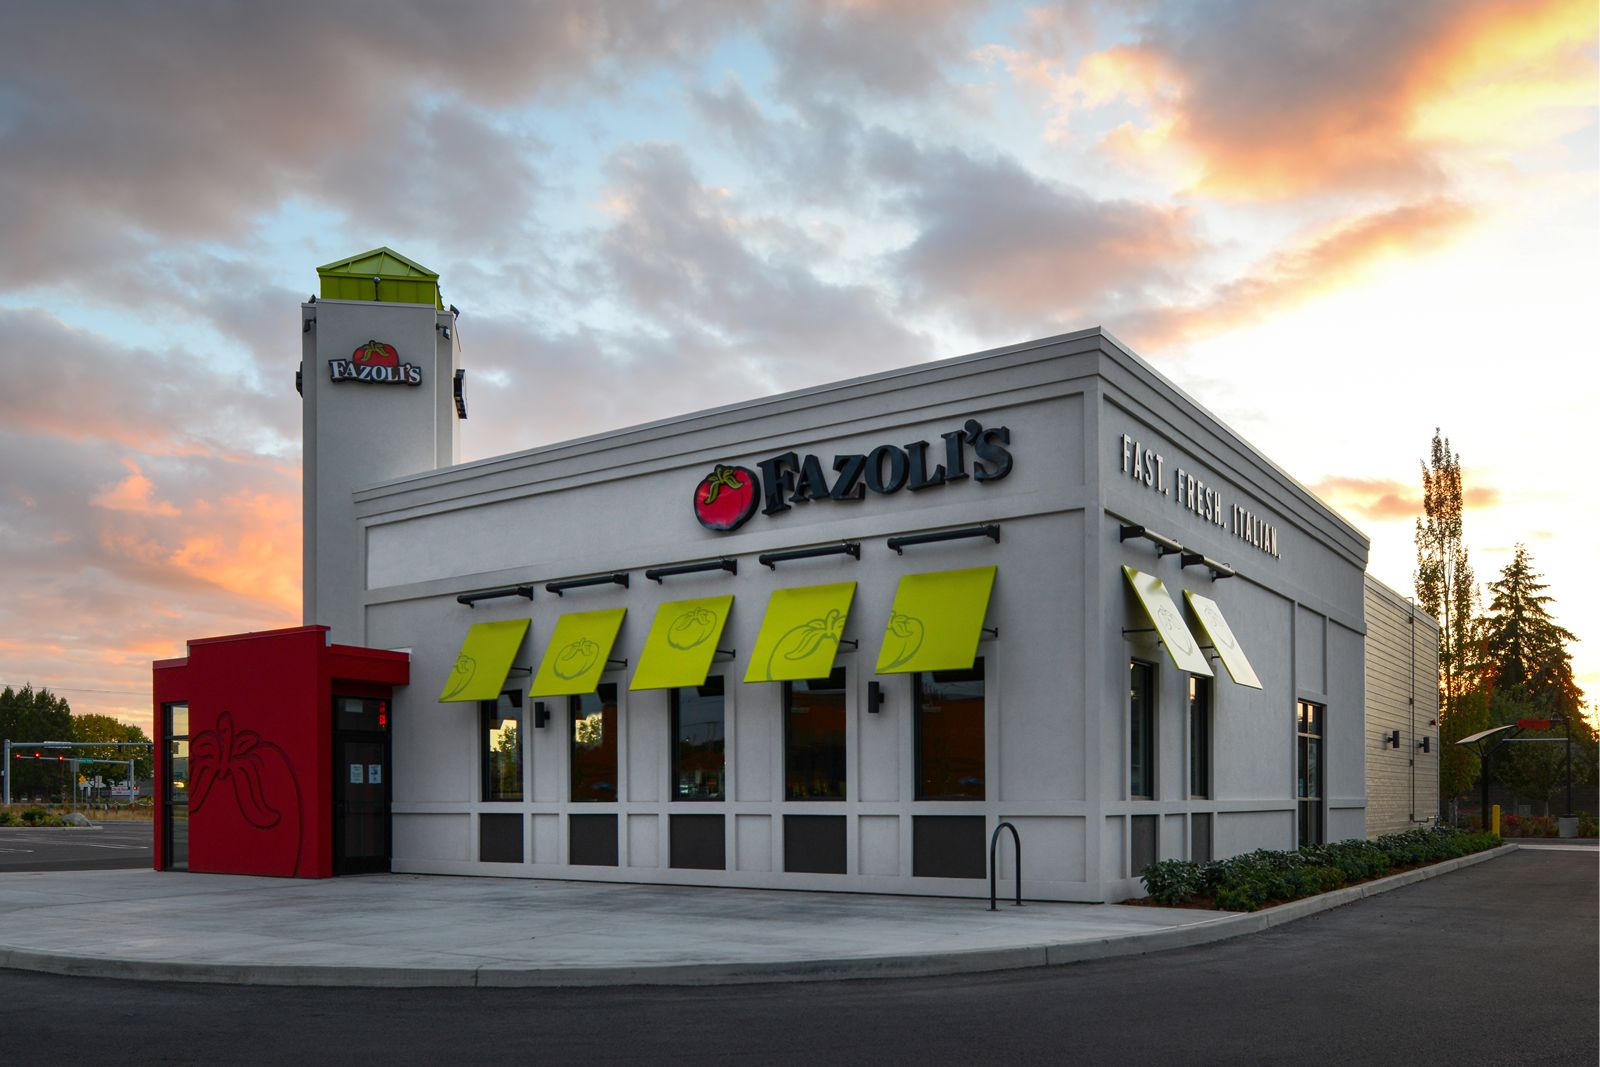 Fazoli's Makes Its Highly Anticipated Return, Bringing Its Renowned Innovative Menu Back to Morristown